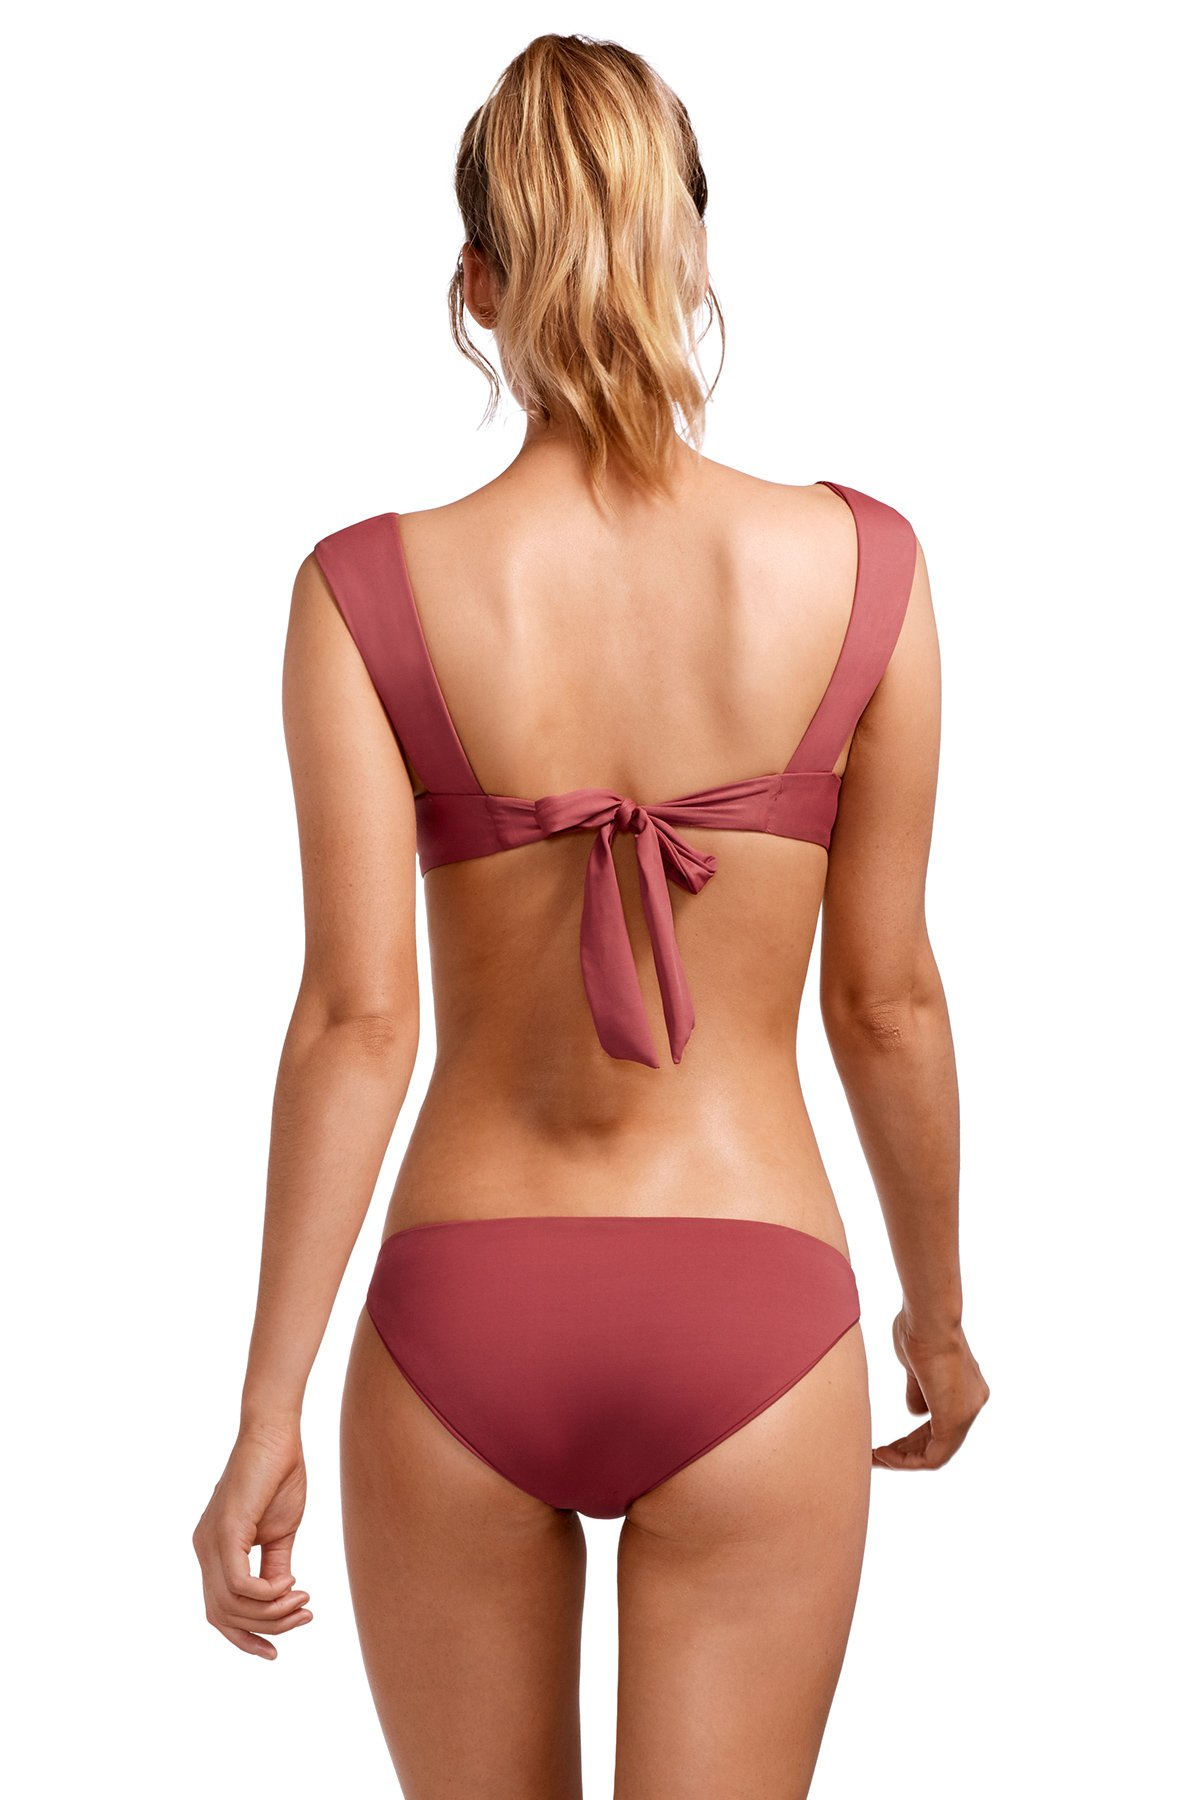 Magnolia Banded Over the Shoulder Bikini Top - Havana Rose 2